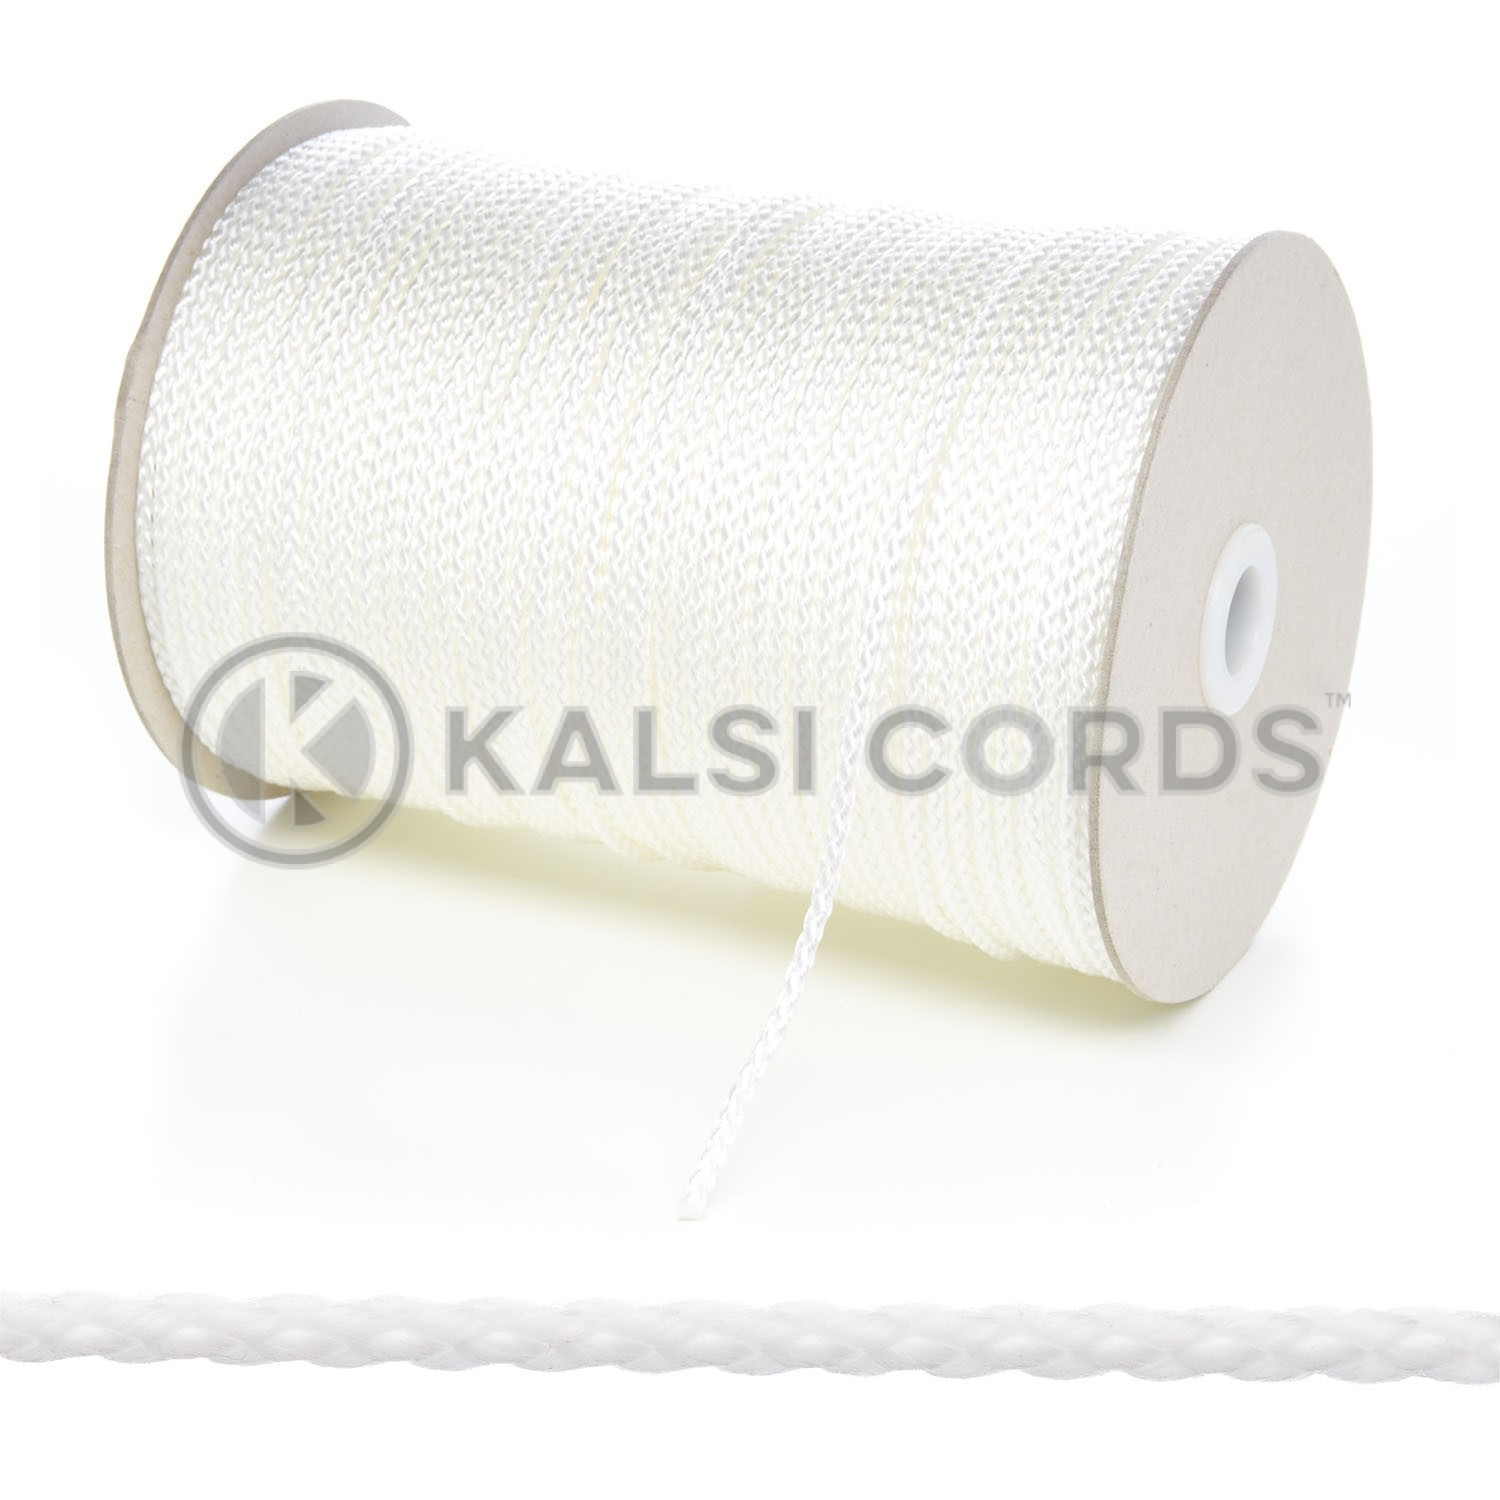 3mm Thin Natural White Polypropylene Cord String Rope Roll Spool P377 Kalsi Cords